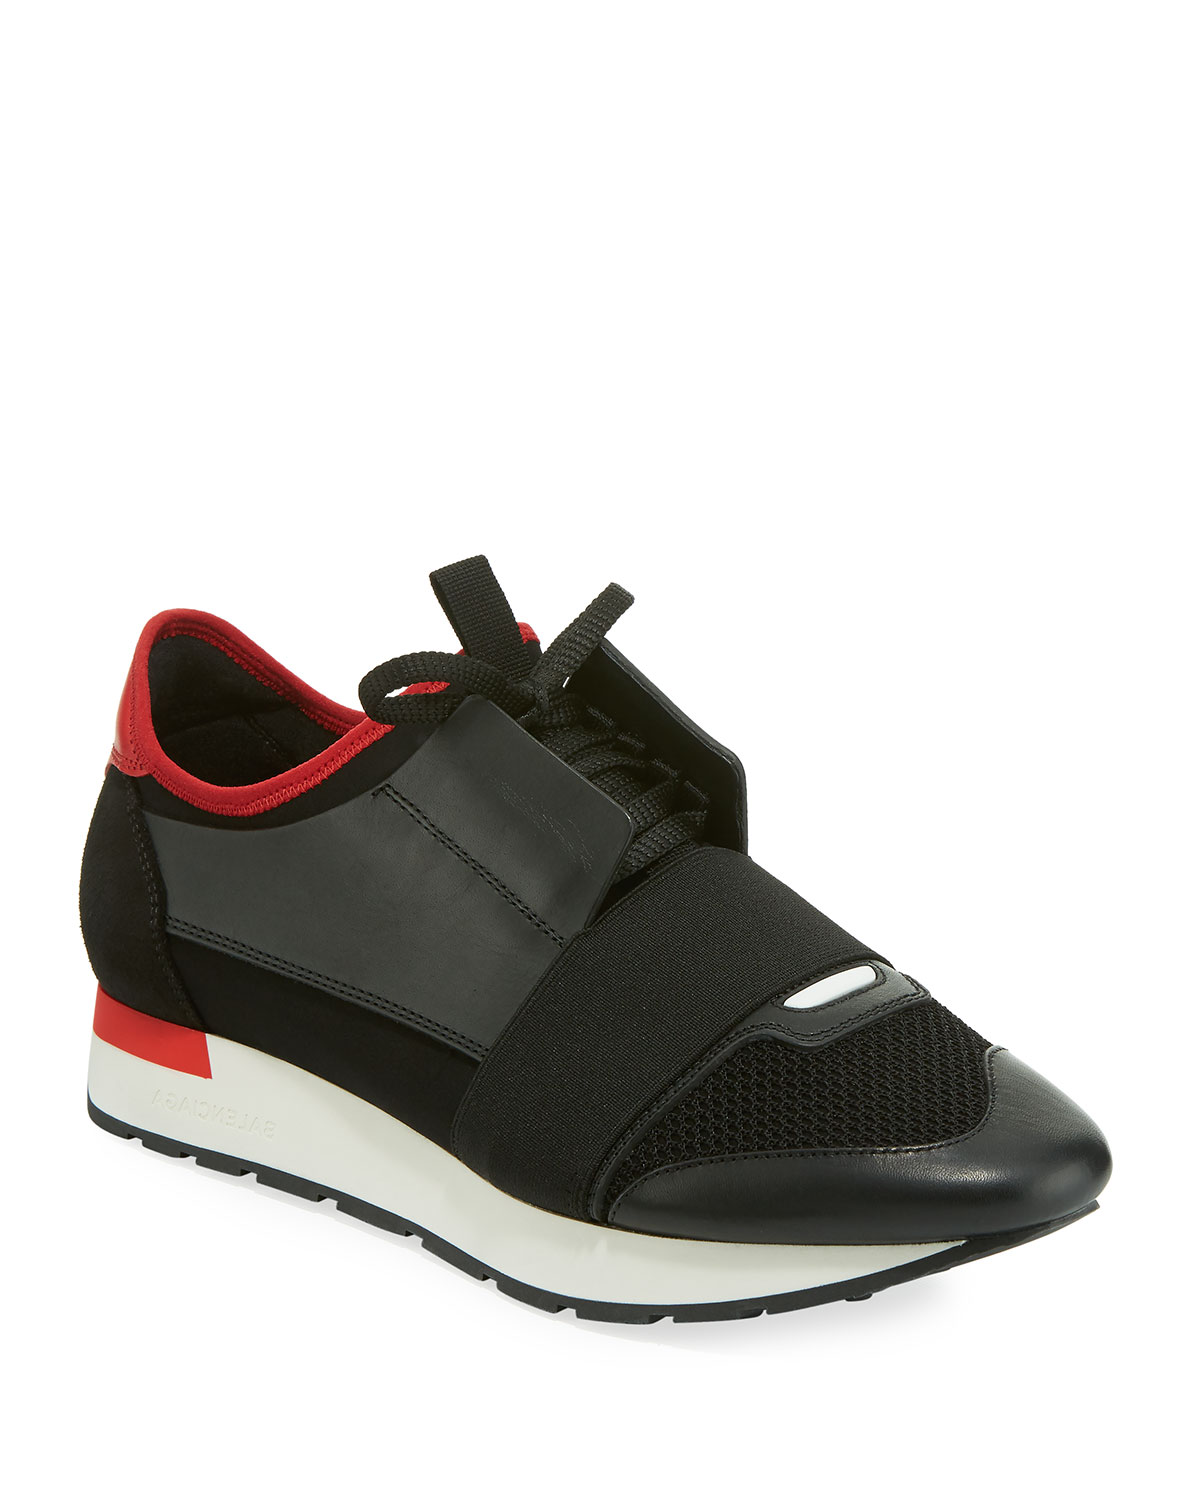 55ad0d9957542 Balenciaga Men's Race Runner Mesh & Leather Sneakers, Black/Red ...